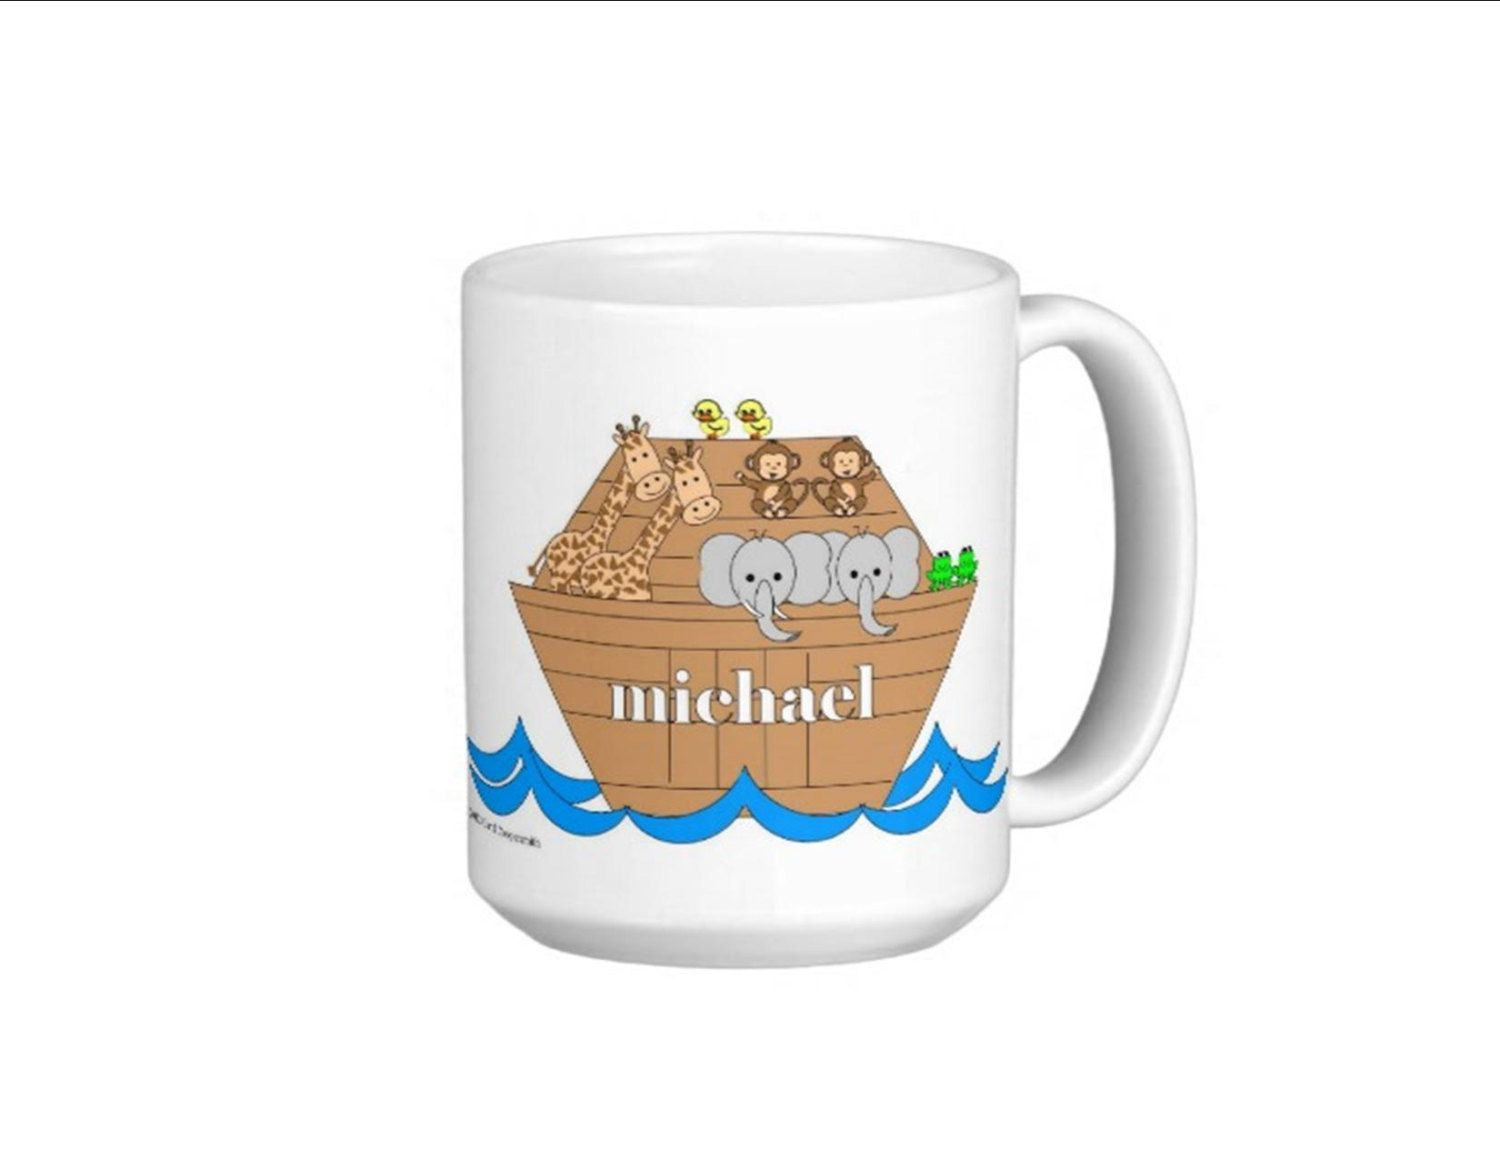 Noah's Ark Personalized Mugs - 11 oz. For Boys and Girls